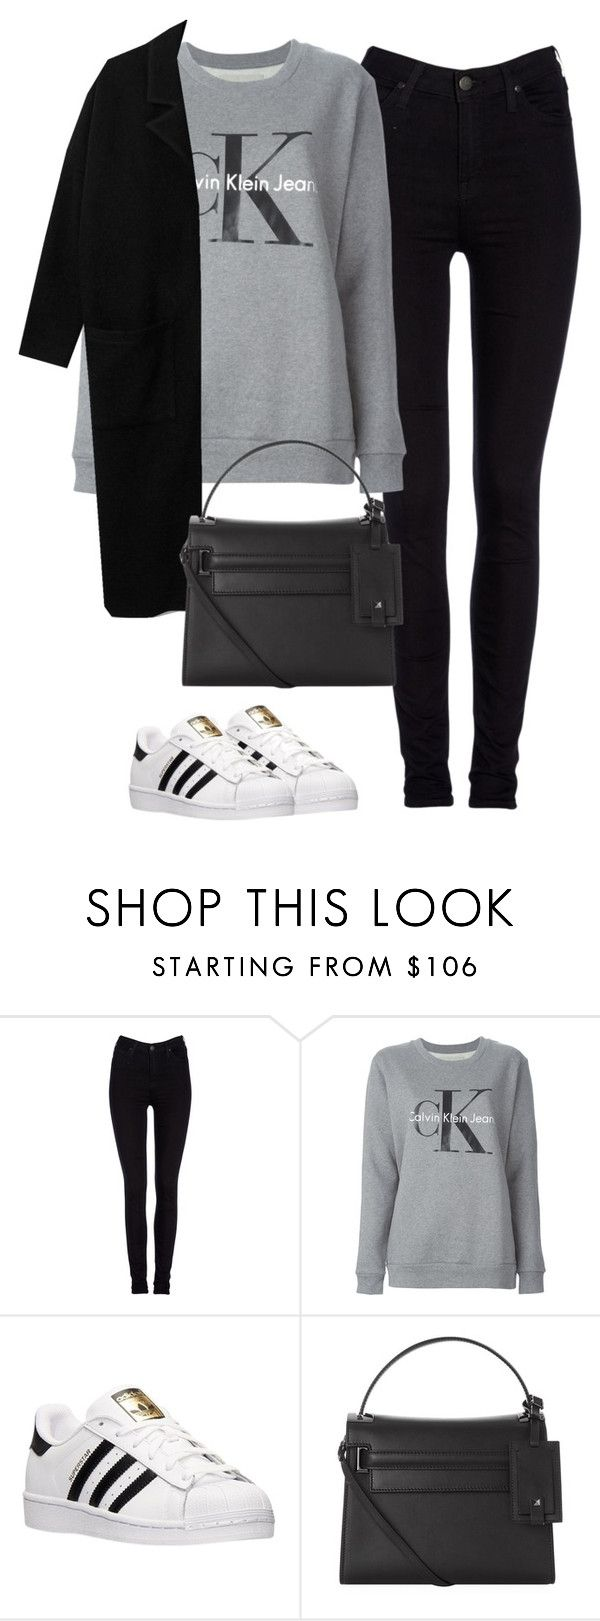 """Untitled #465"" by christyandnef on Polyvore featuring Lee, Calvin Klein Jeans, adidas, Valentino, women's clothing, women, female, woman, misses and juniors"